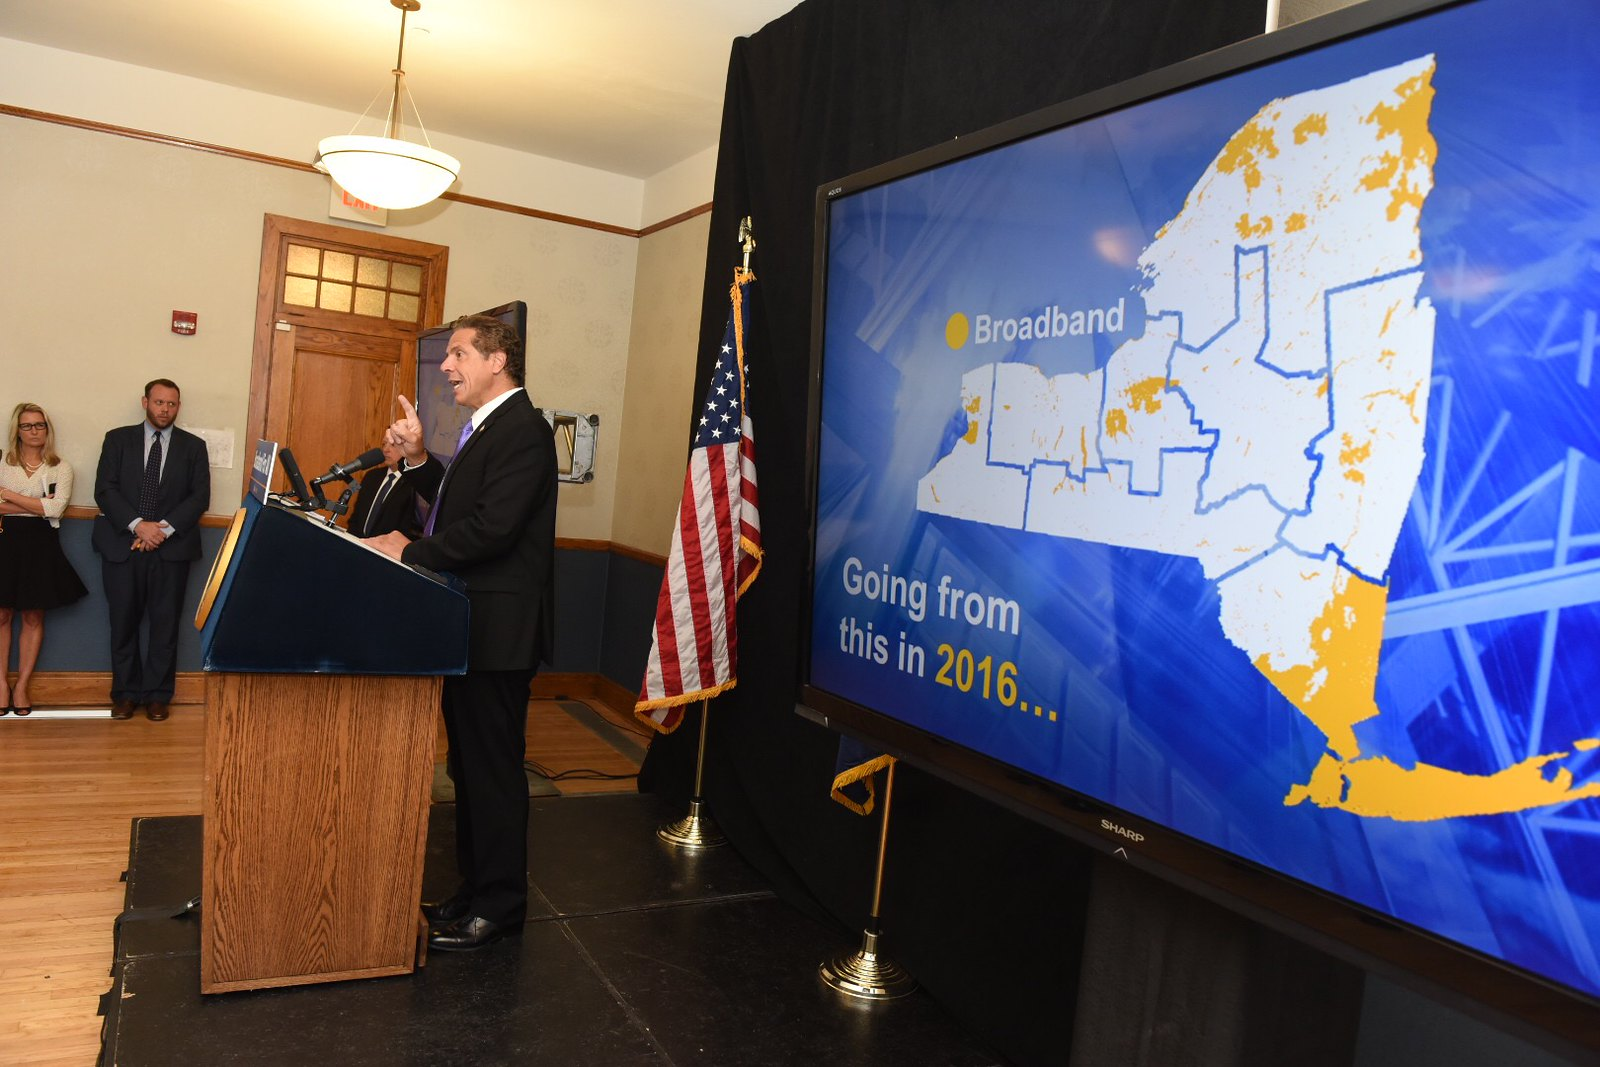 Governor Cuomo Announces Broadband Improvements in Hudson